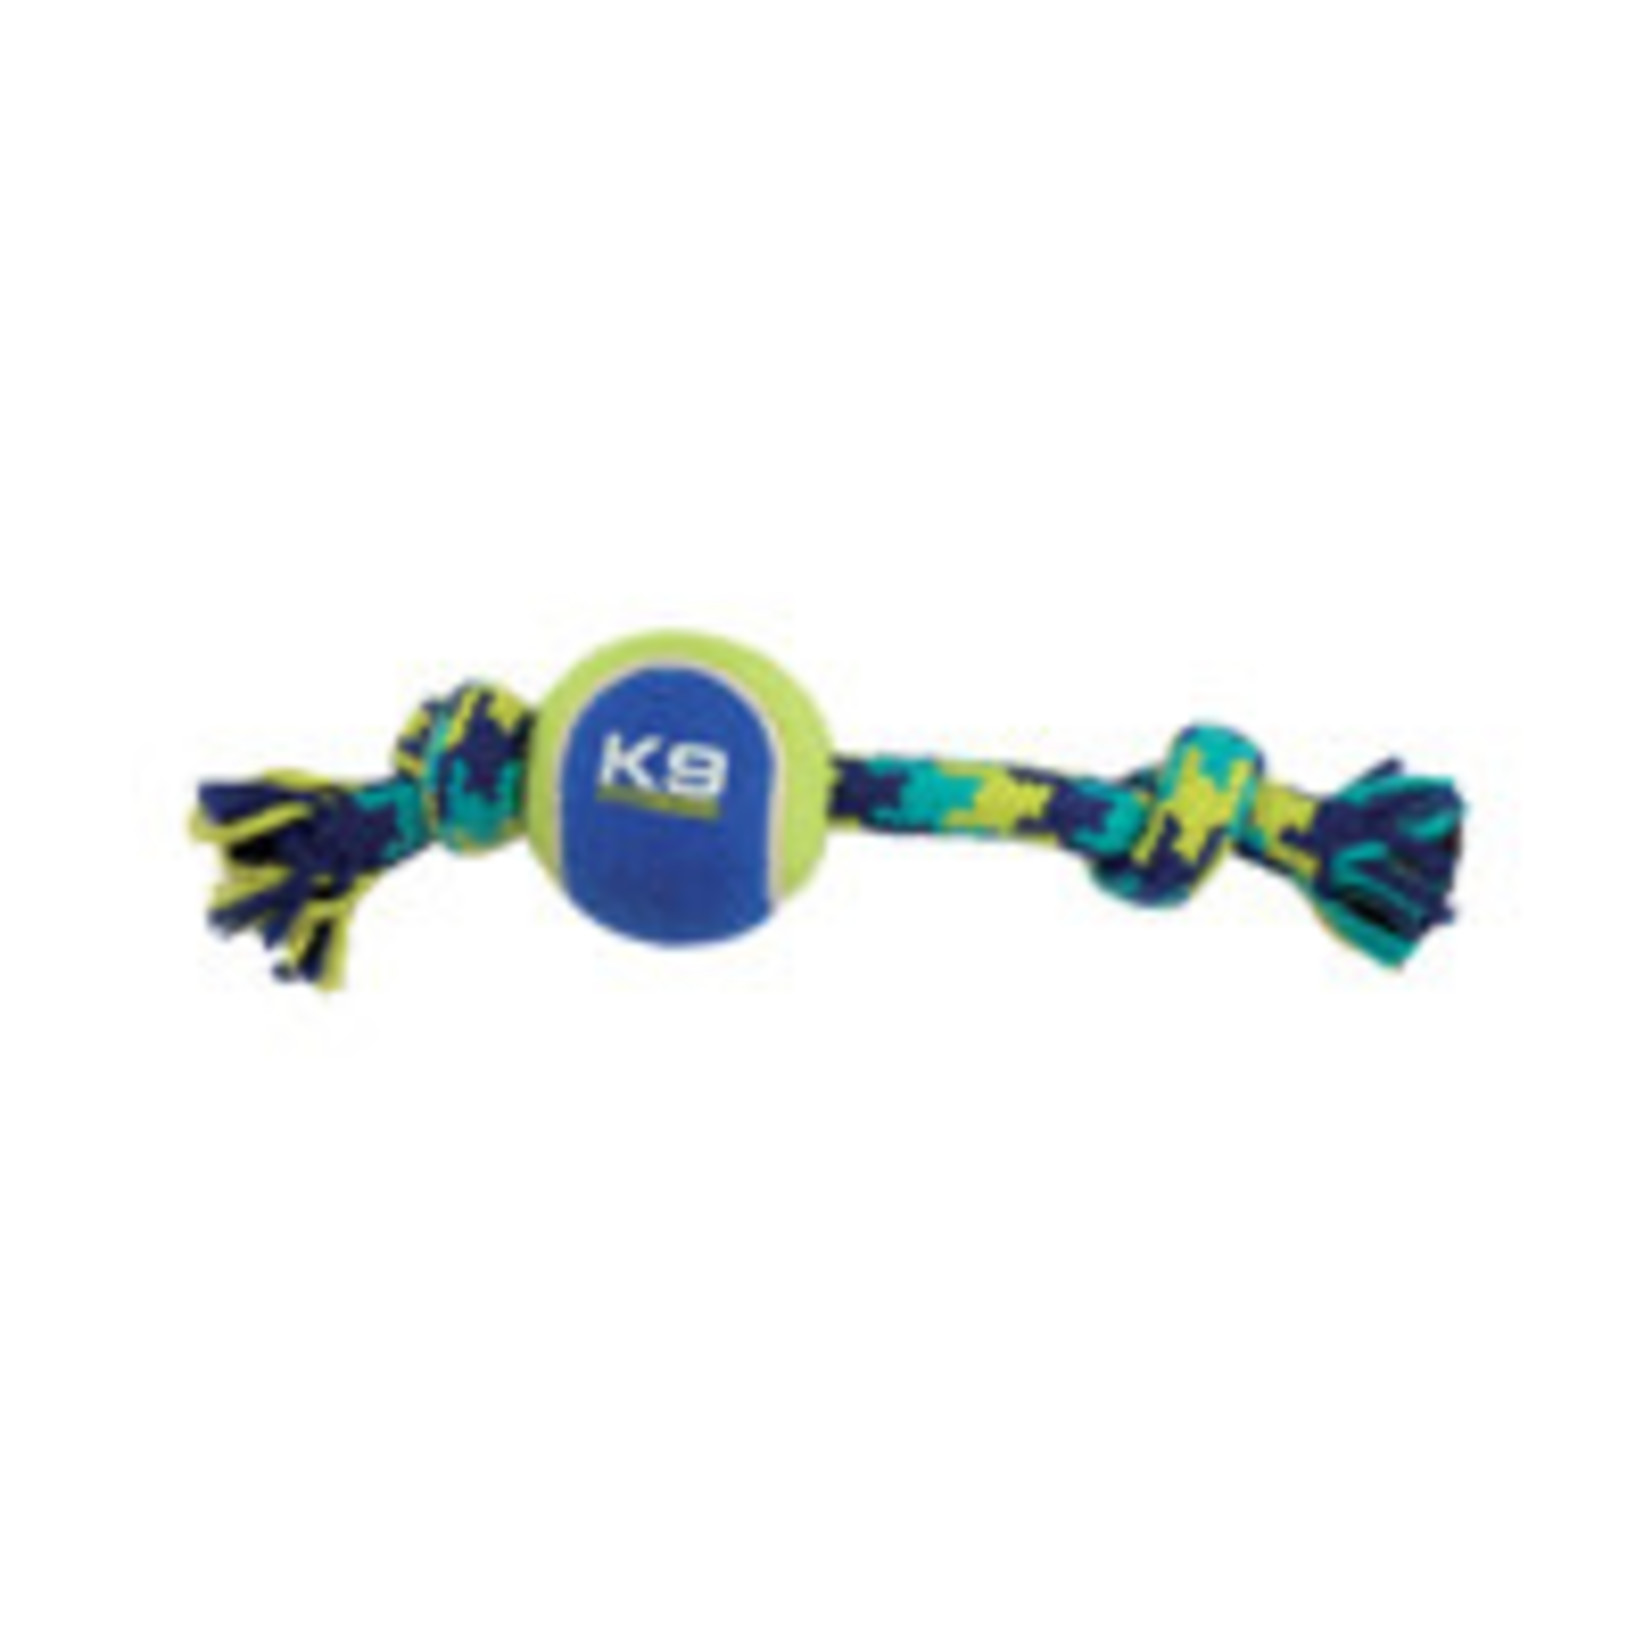 Zeus K9 Fitness Knotted Rope Bone with Tennis Ball - Small - 22.86 cm (9 in)